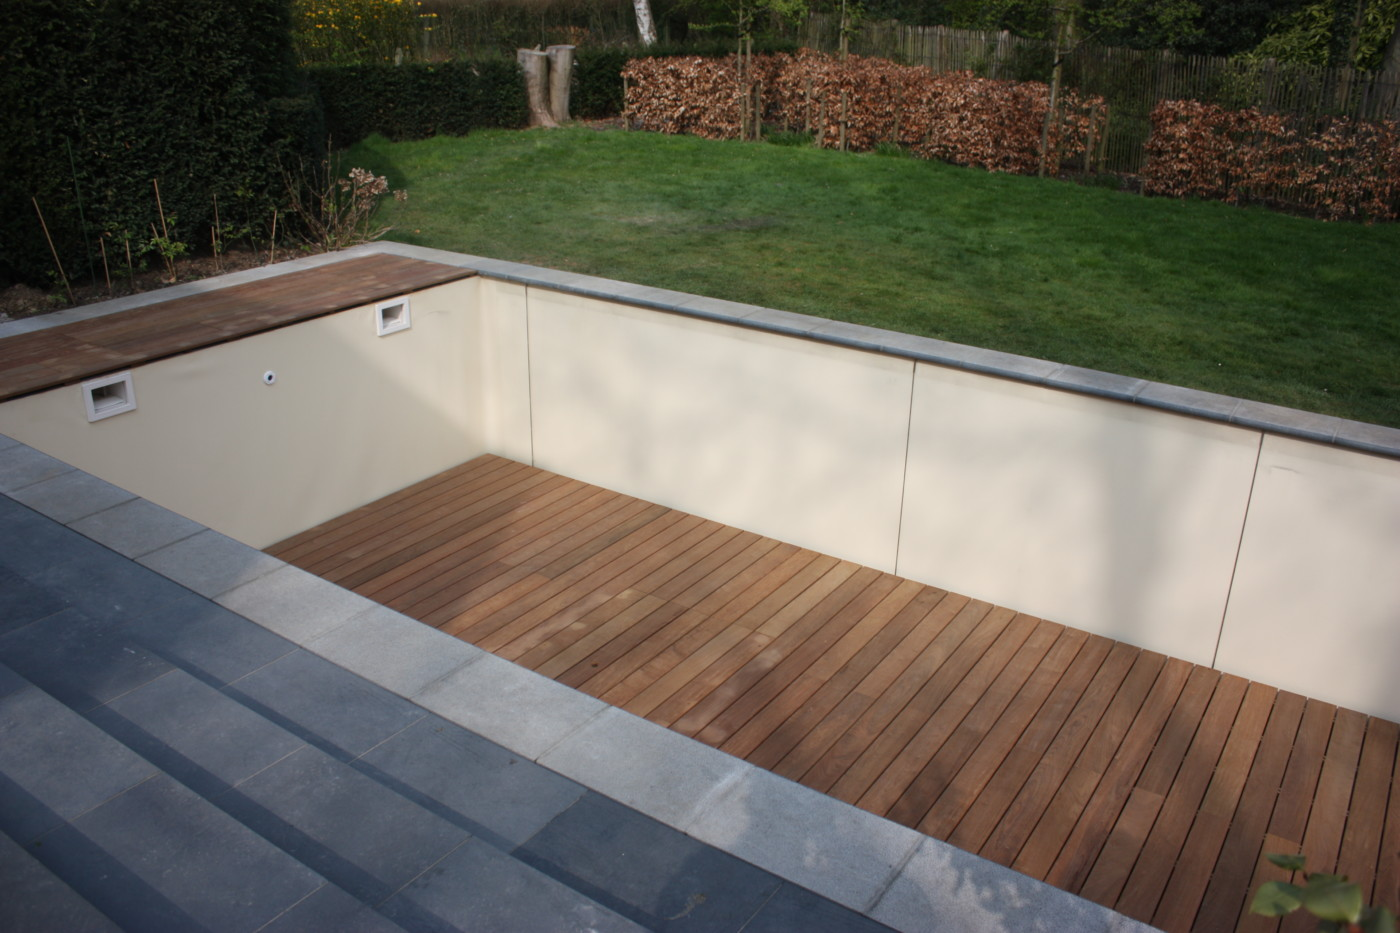 Entourage piscine design belle terrasse design en ip fix for Piscine fond mobile sans cable